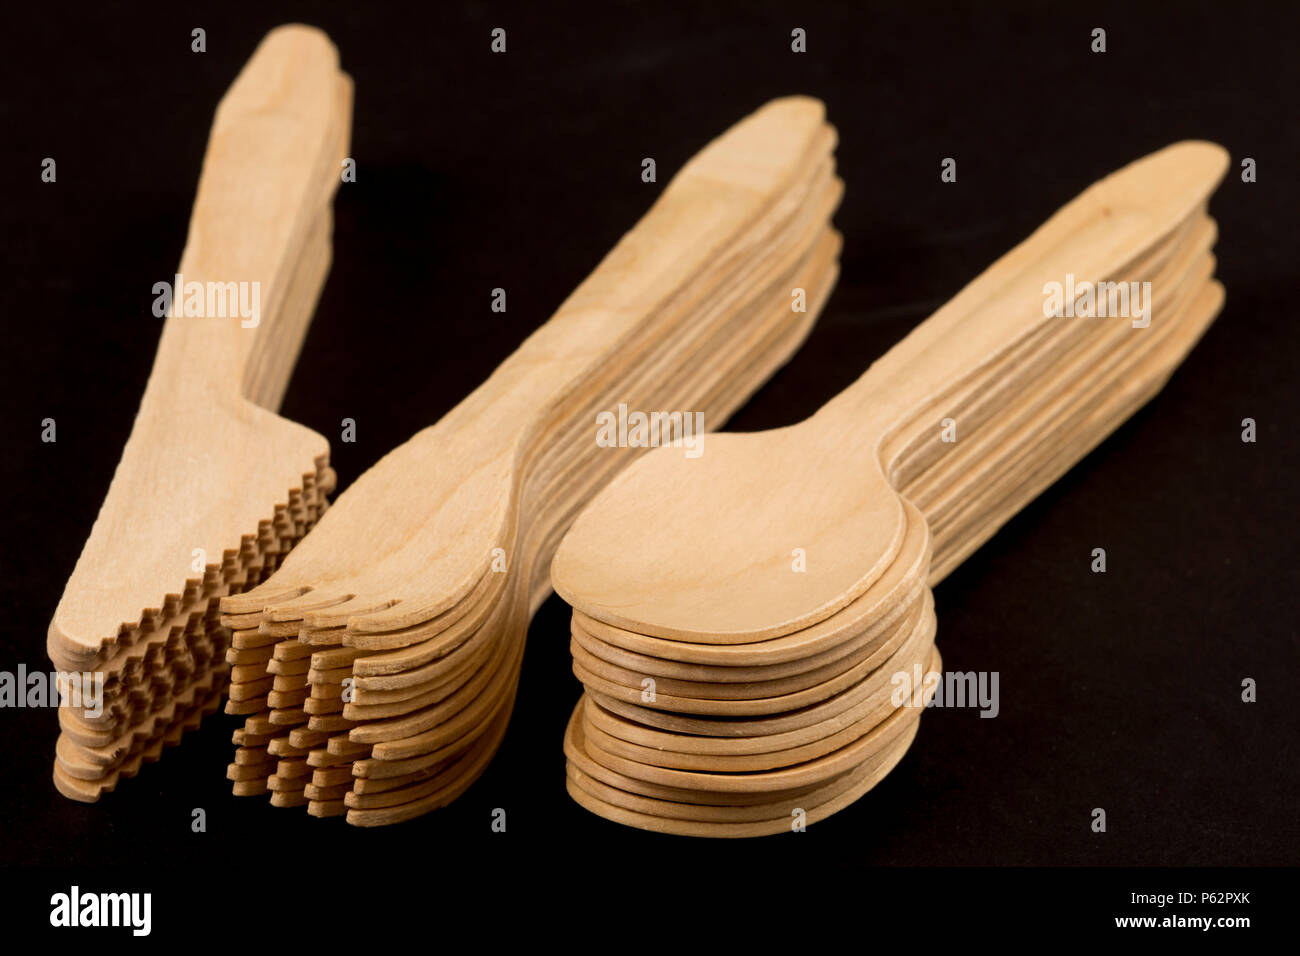 Disposable cutlery made of wood, recyclable, - Stock Image